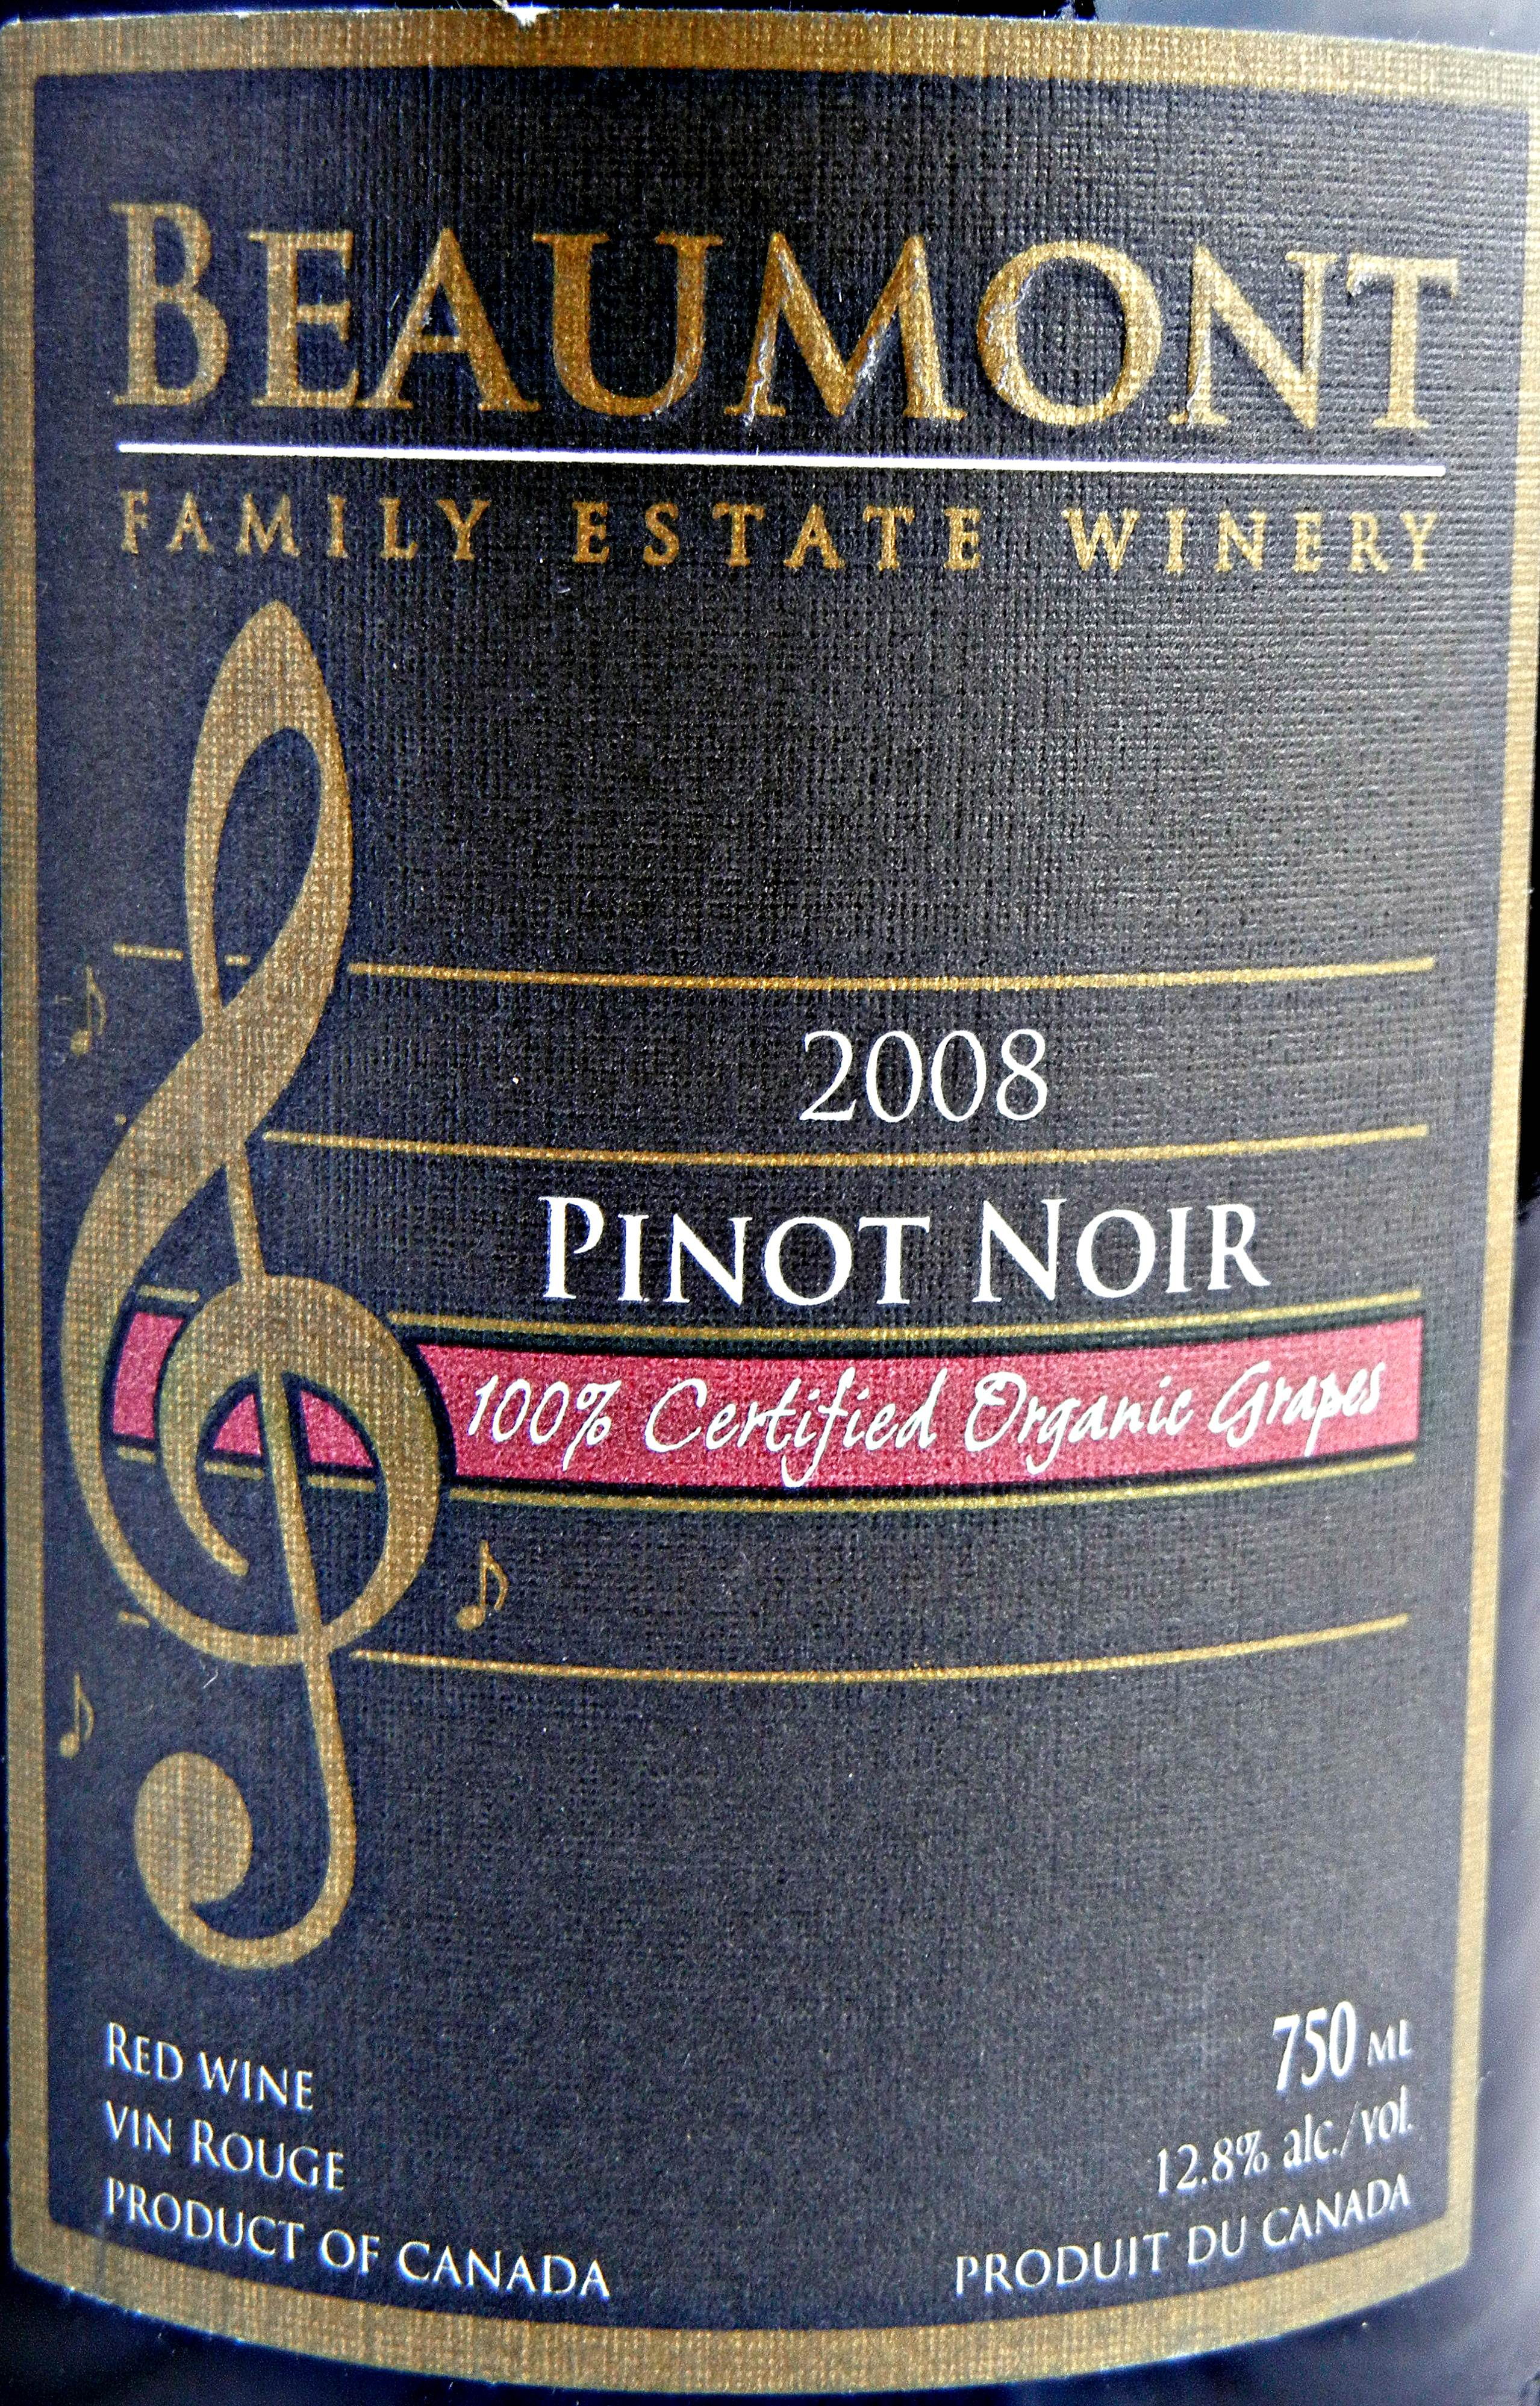 Beaumont Pinot Noir 2008 Label - BC Pinot Noir Tasting Review 23